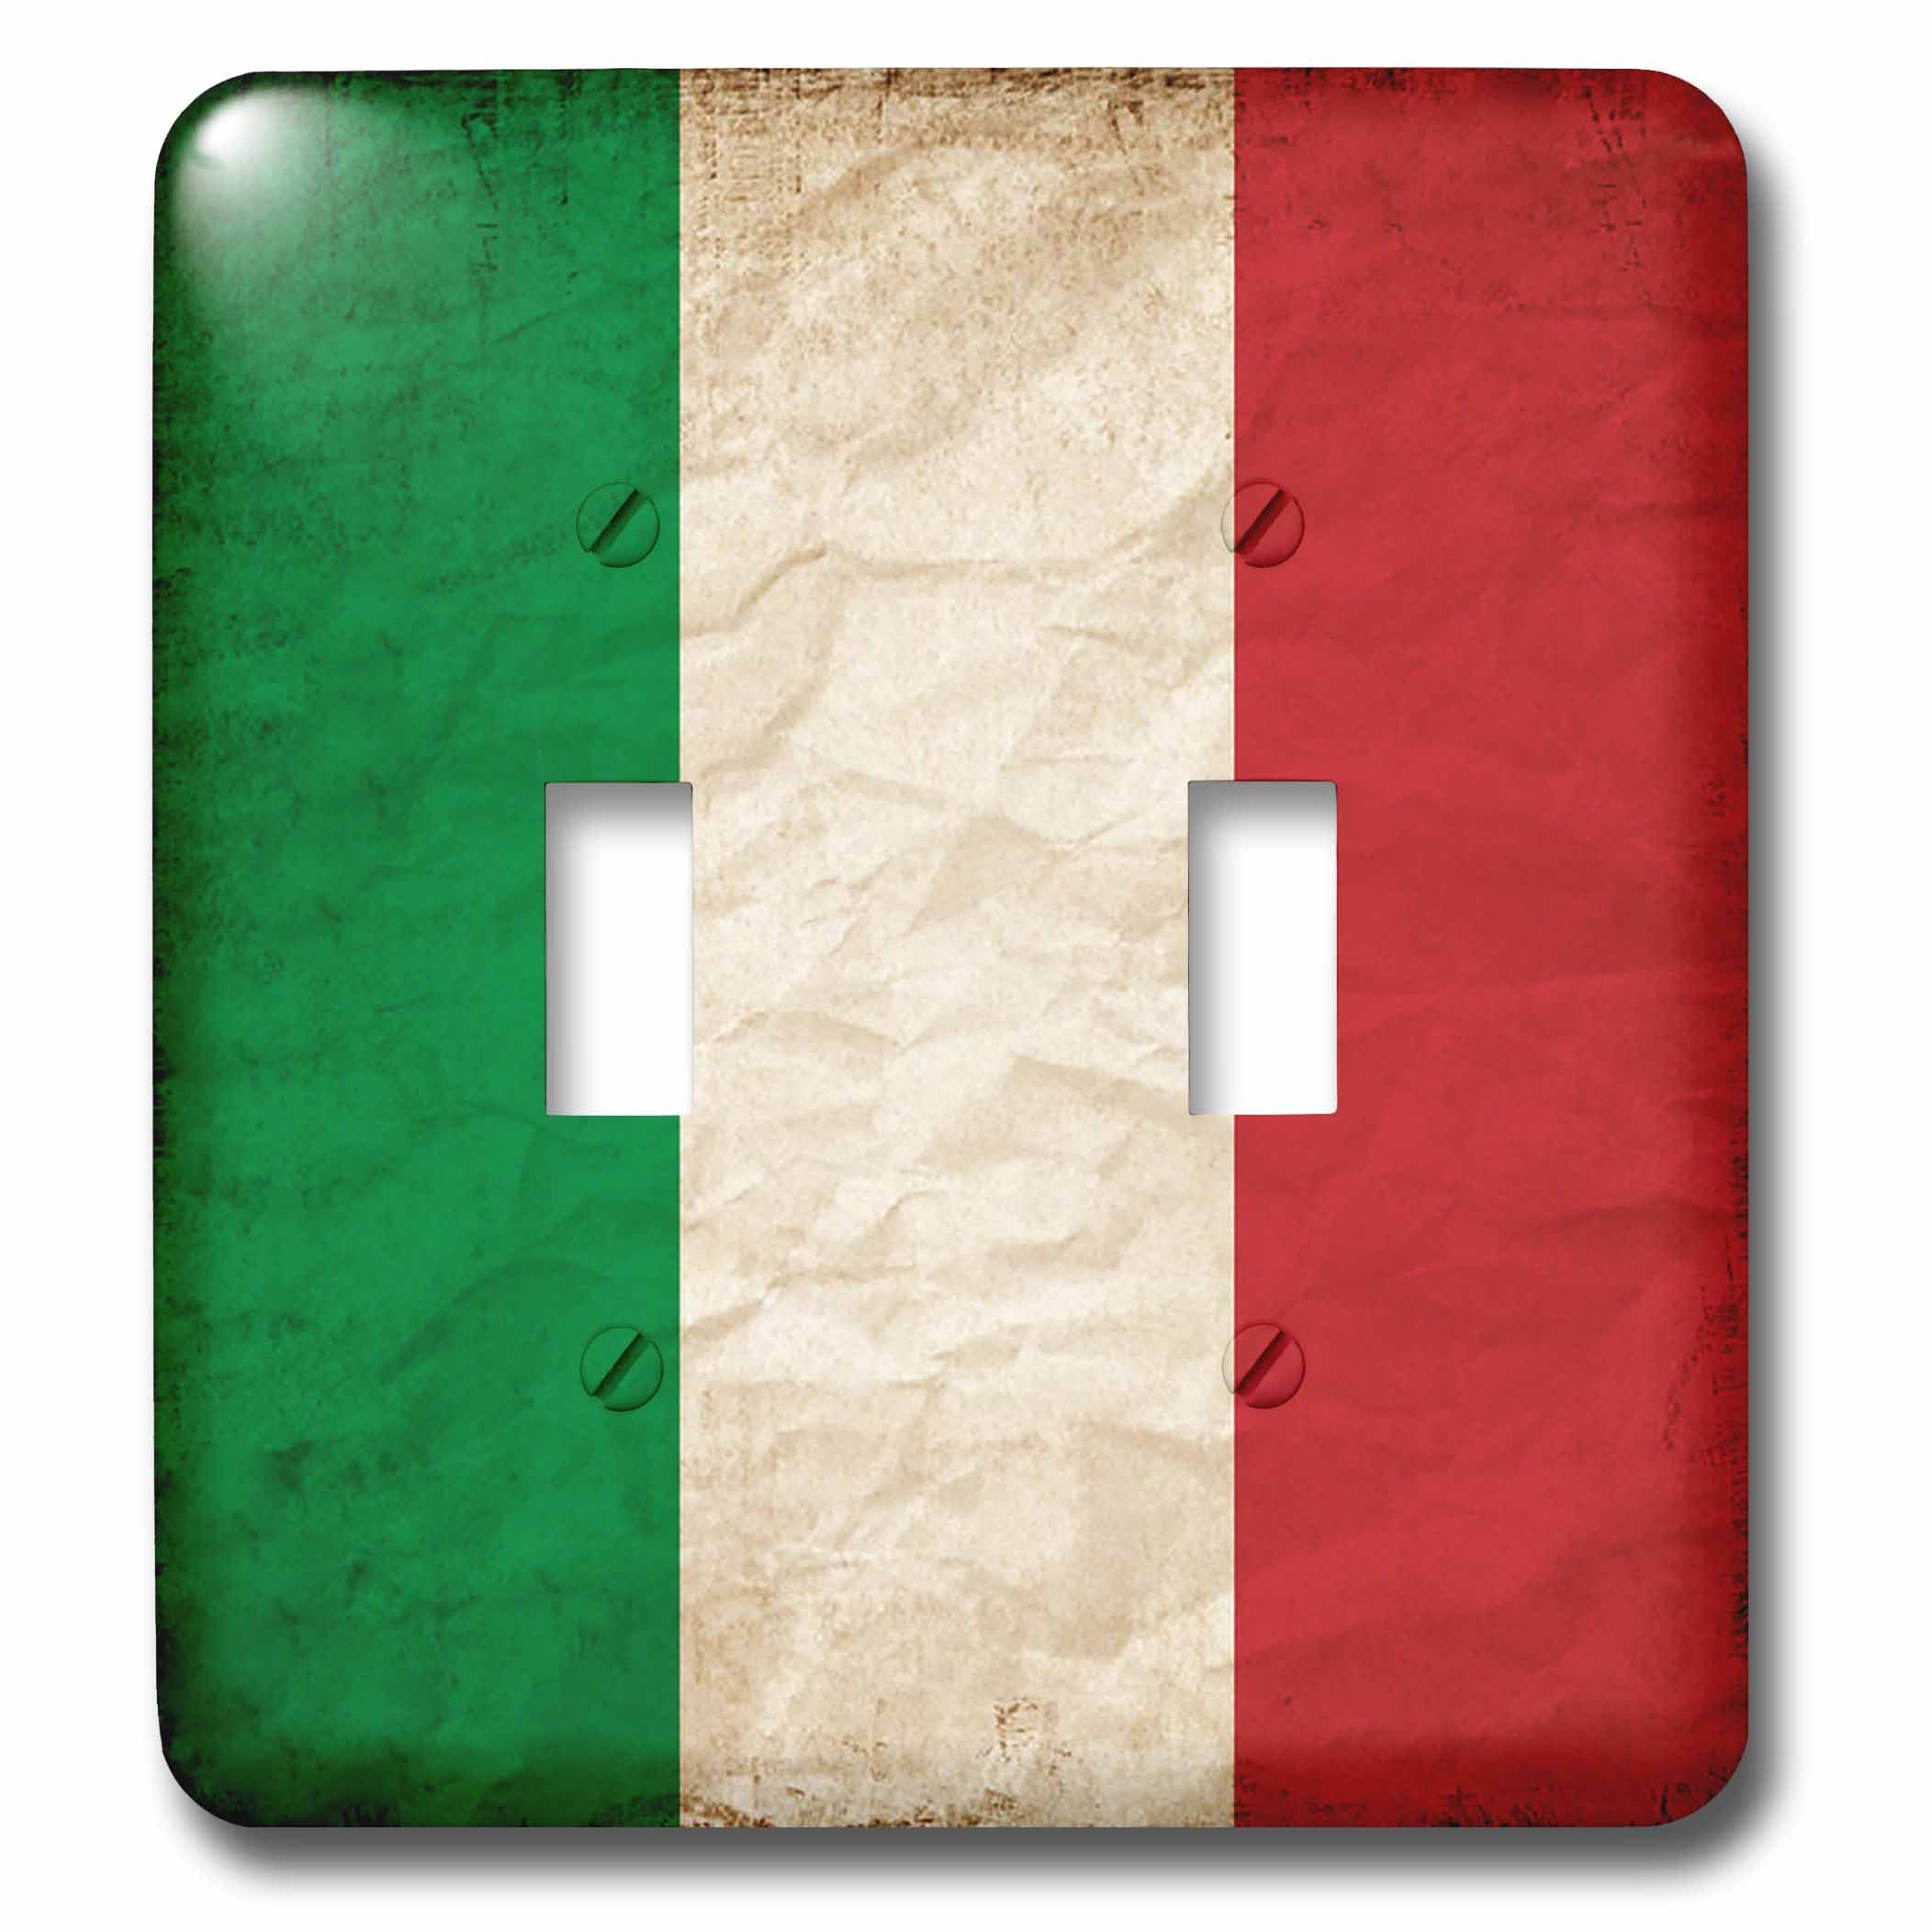 3dRose Sven Herkenrath Flags - Italian Flag Old Look Trendy Work - Light Switch Covers - double toggle switch (lsp_255823_2)